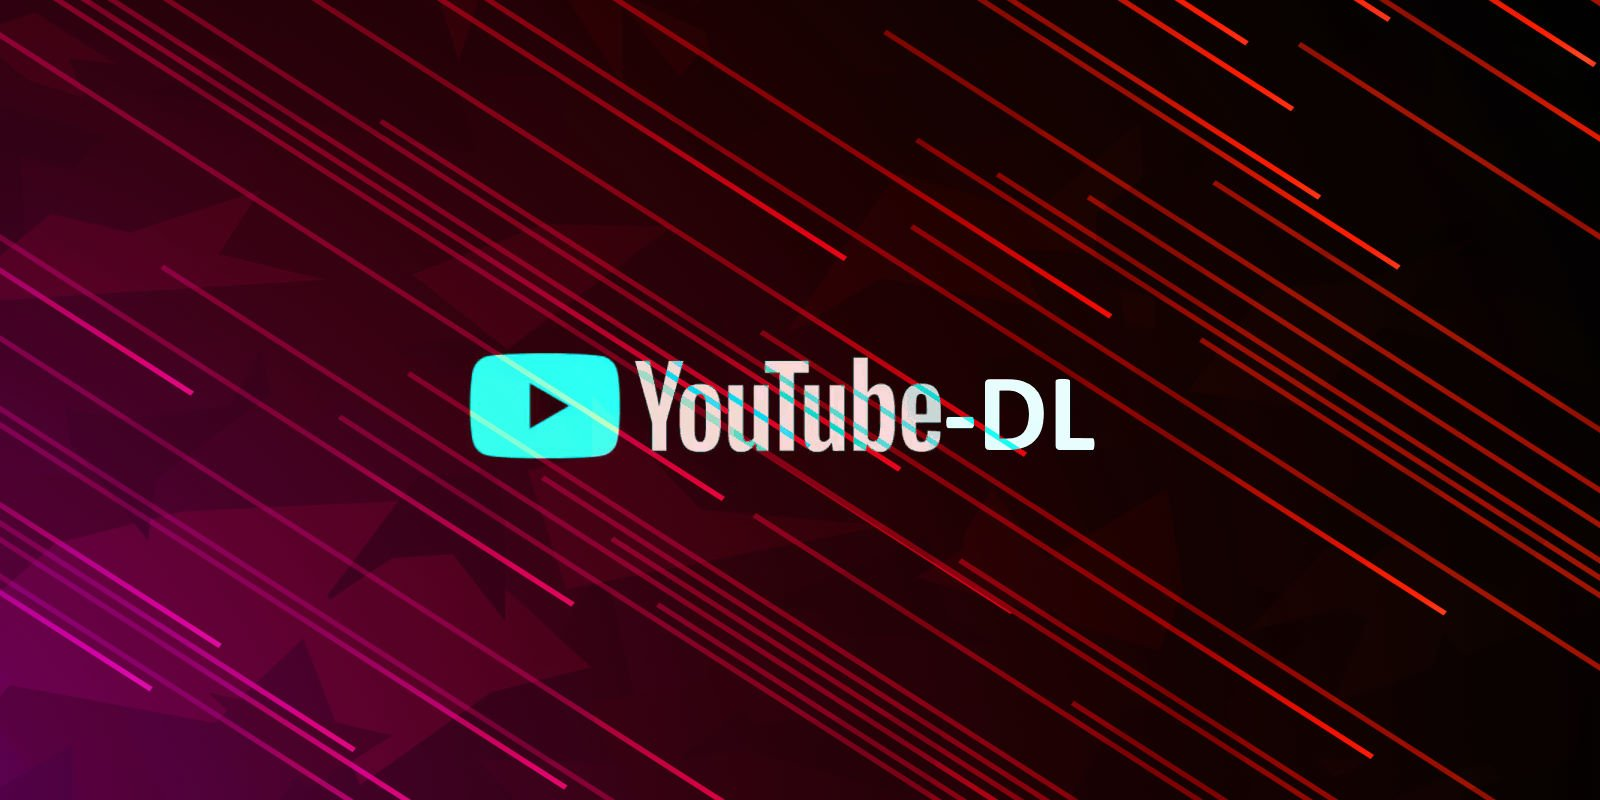 YouTube-dl